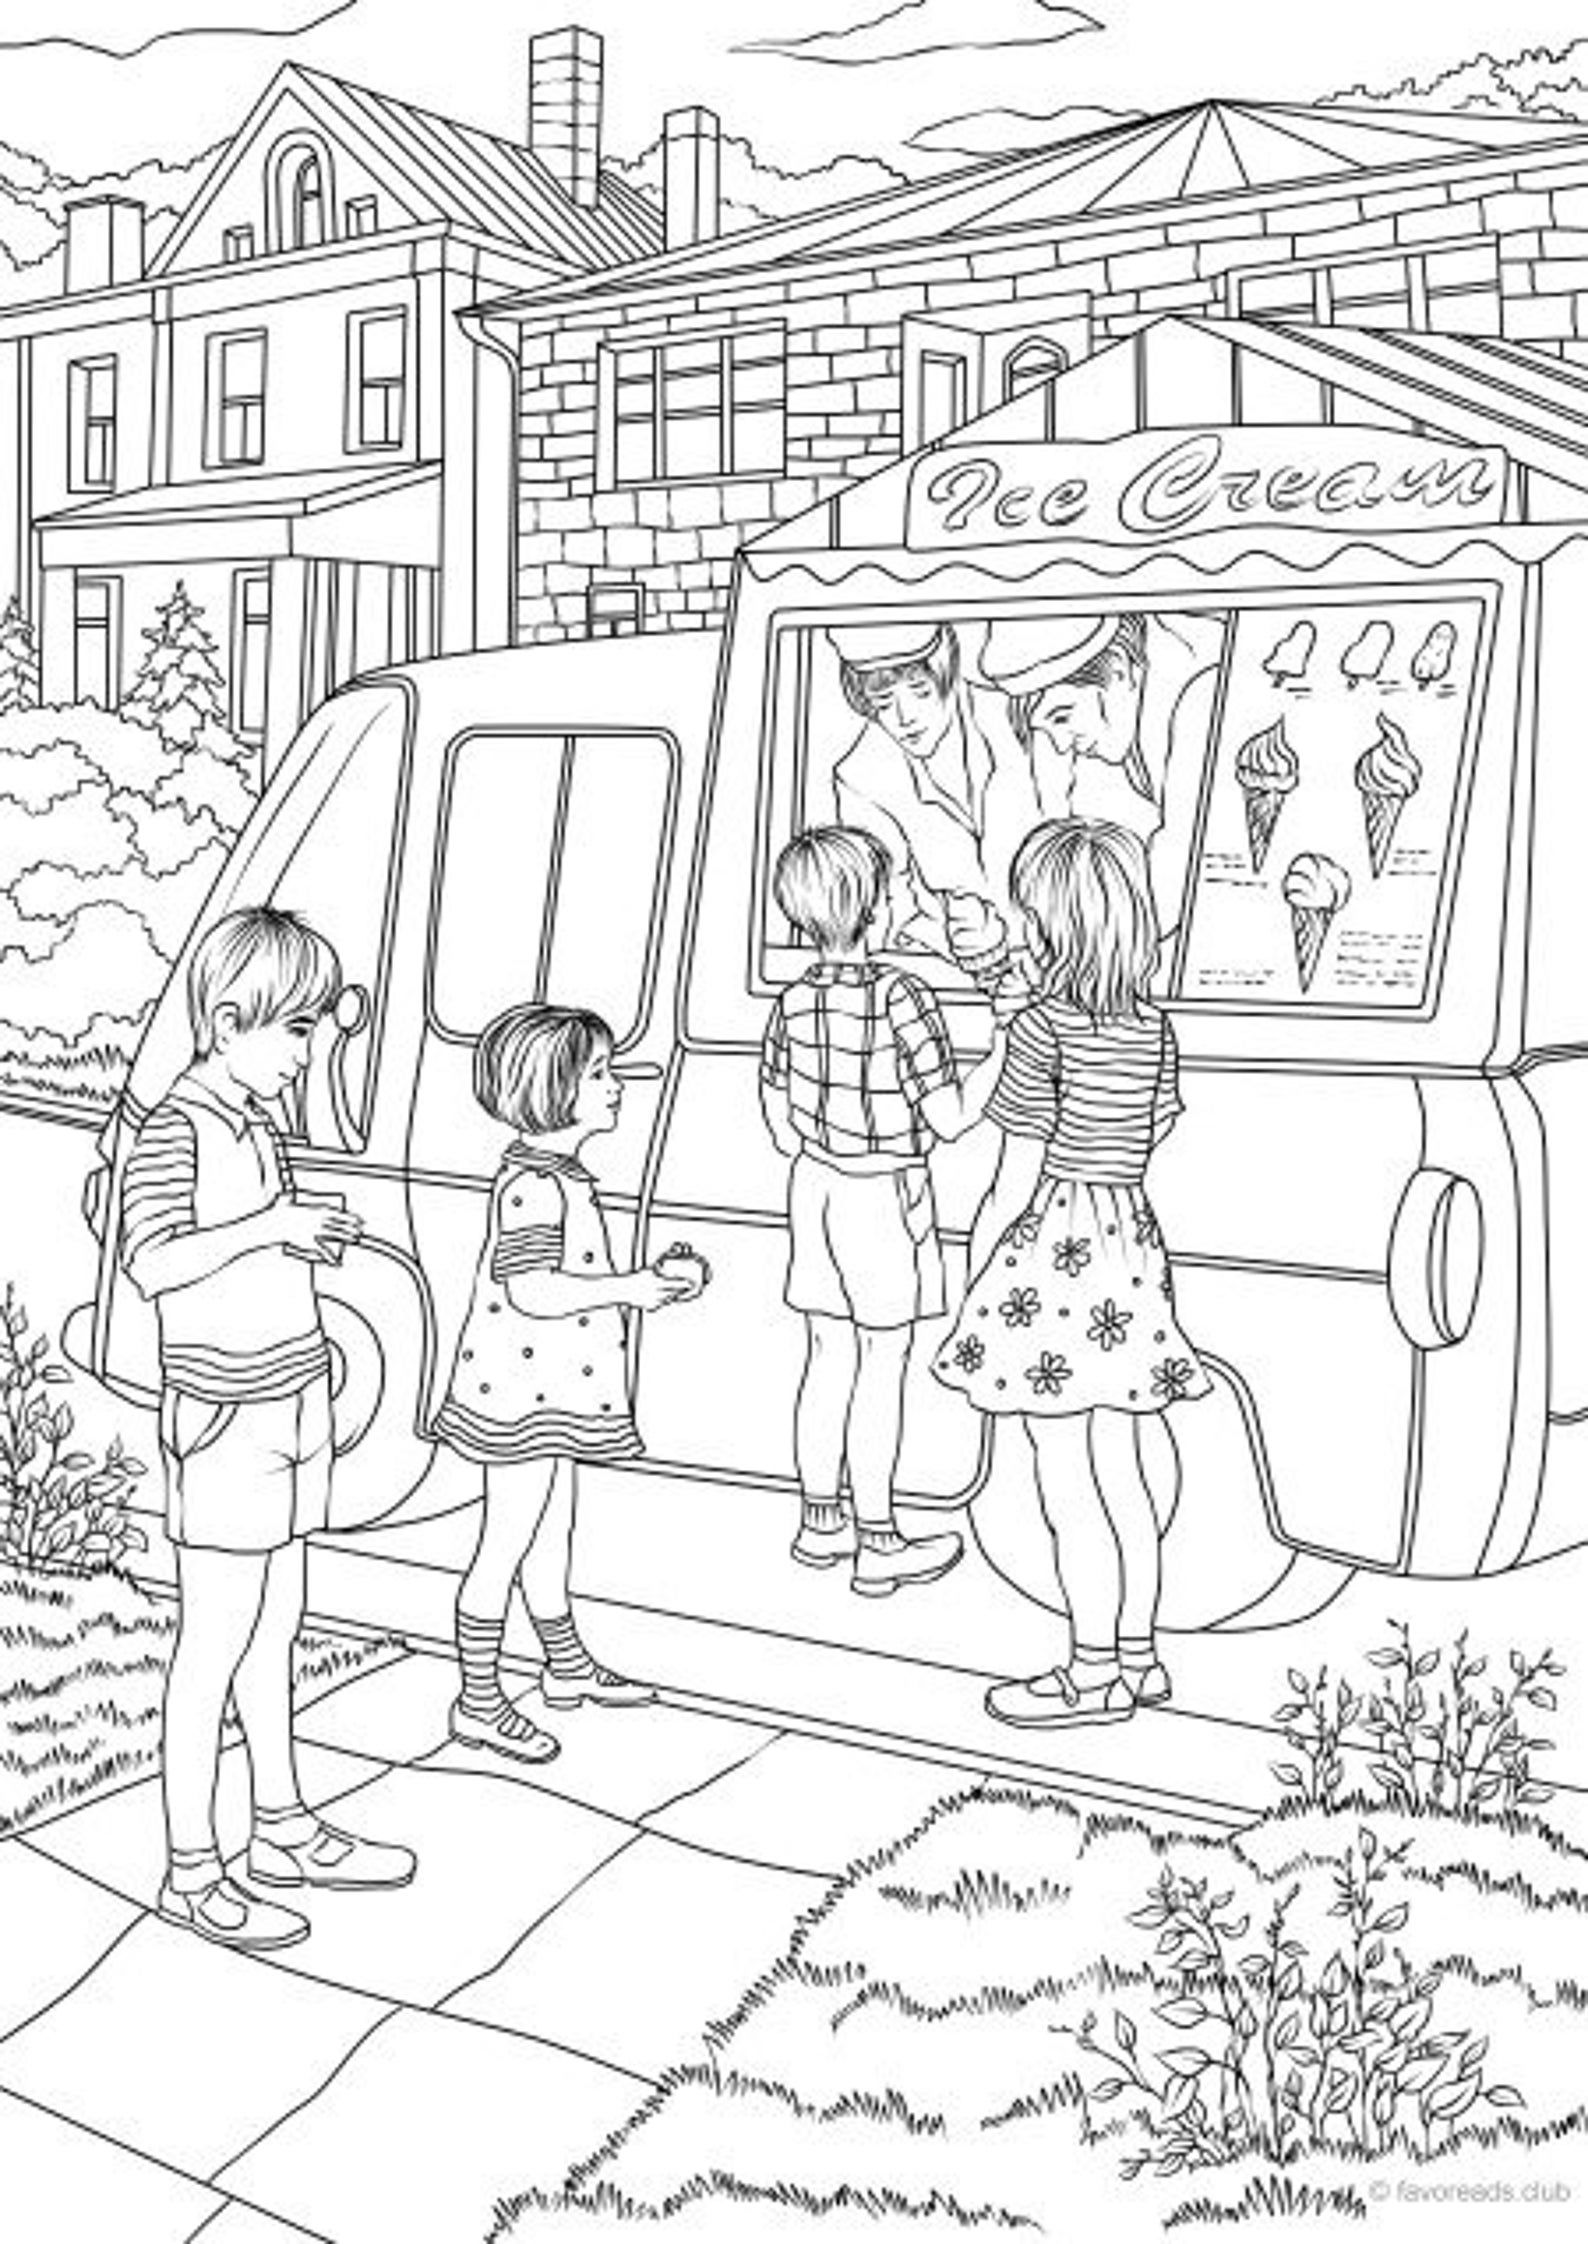 Ice Cream Truck Printable Adult Coloring Page From Favoreads